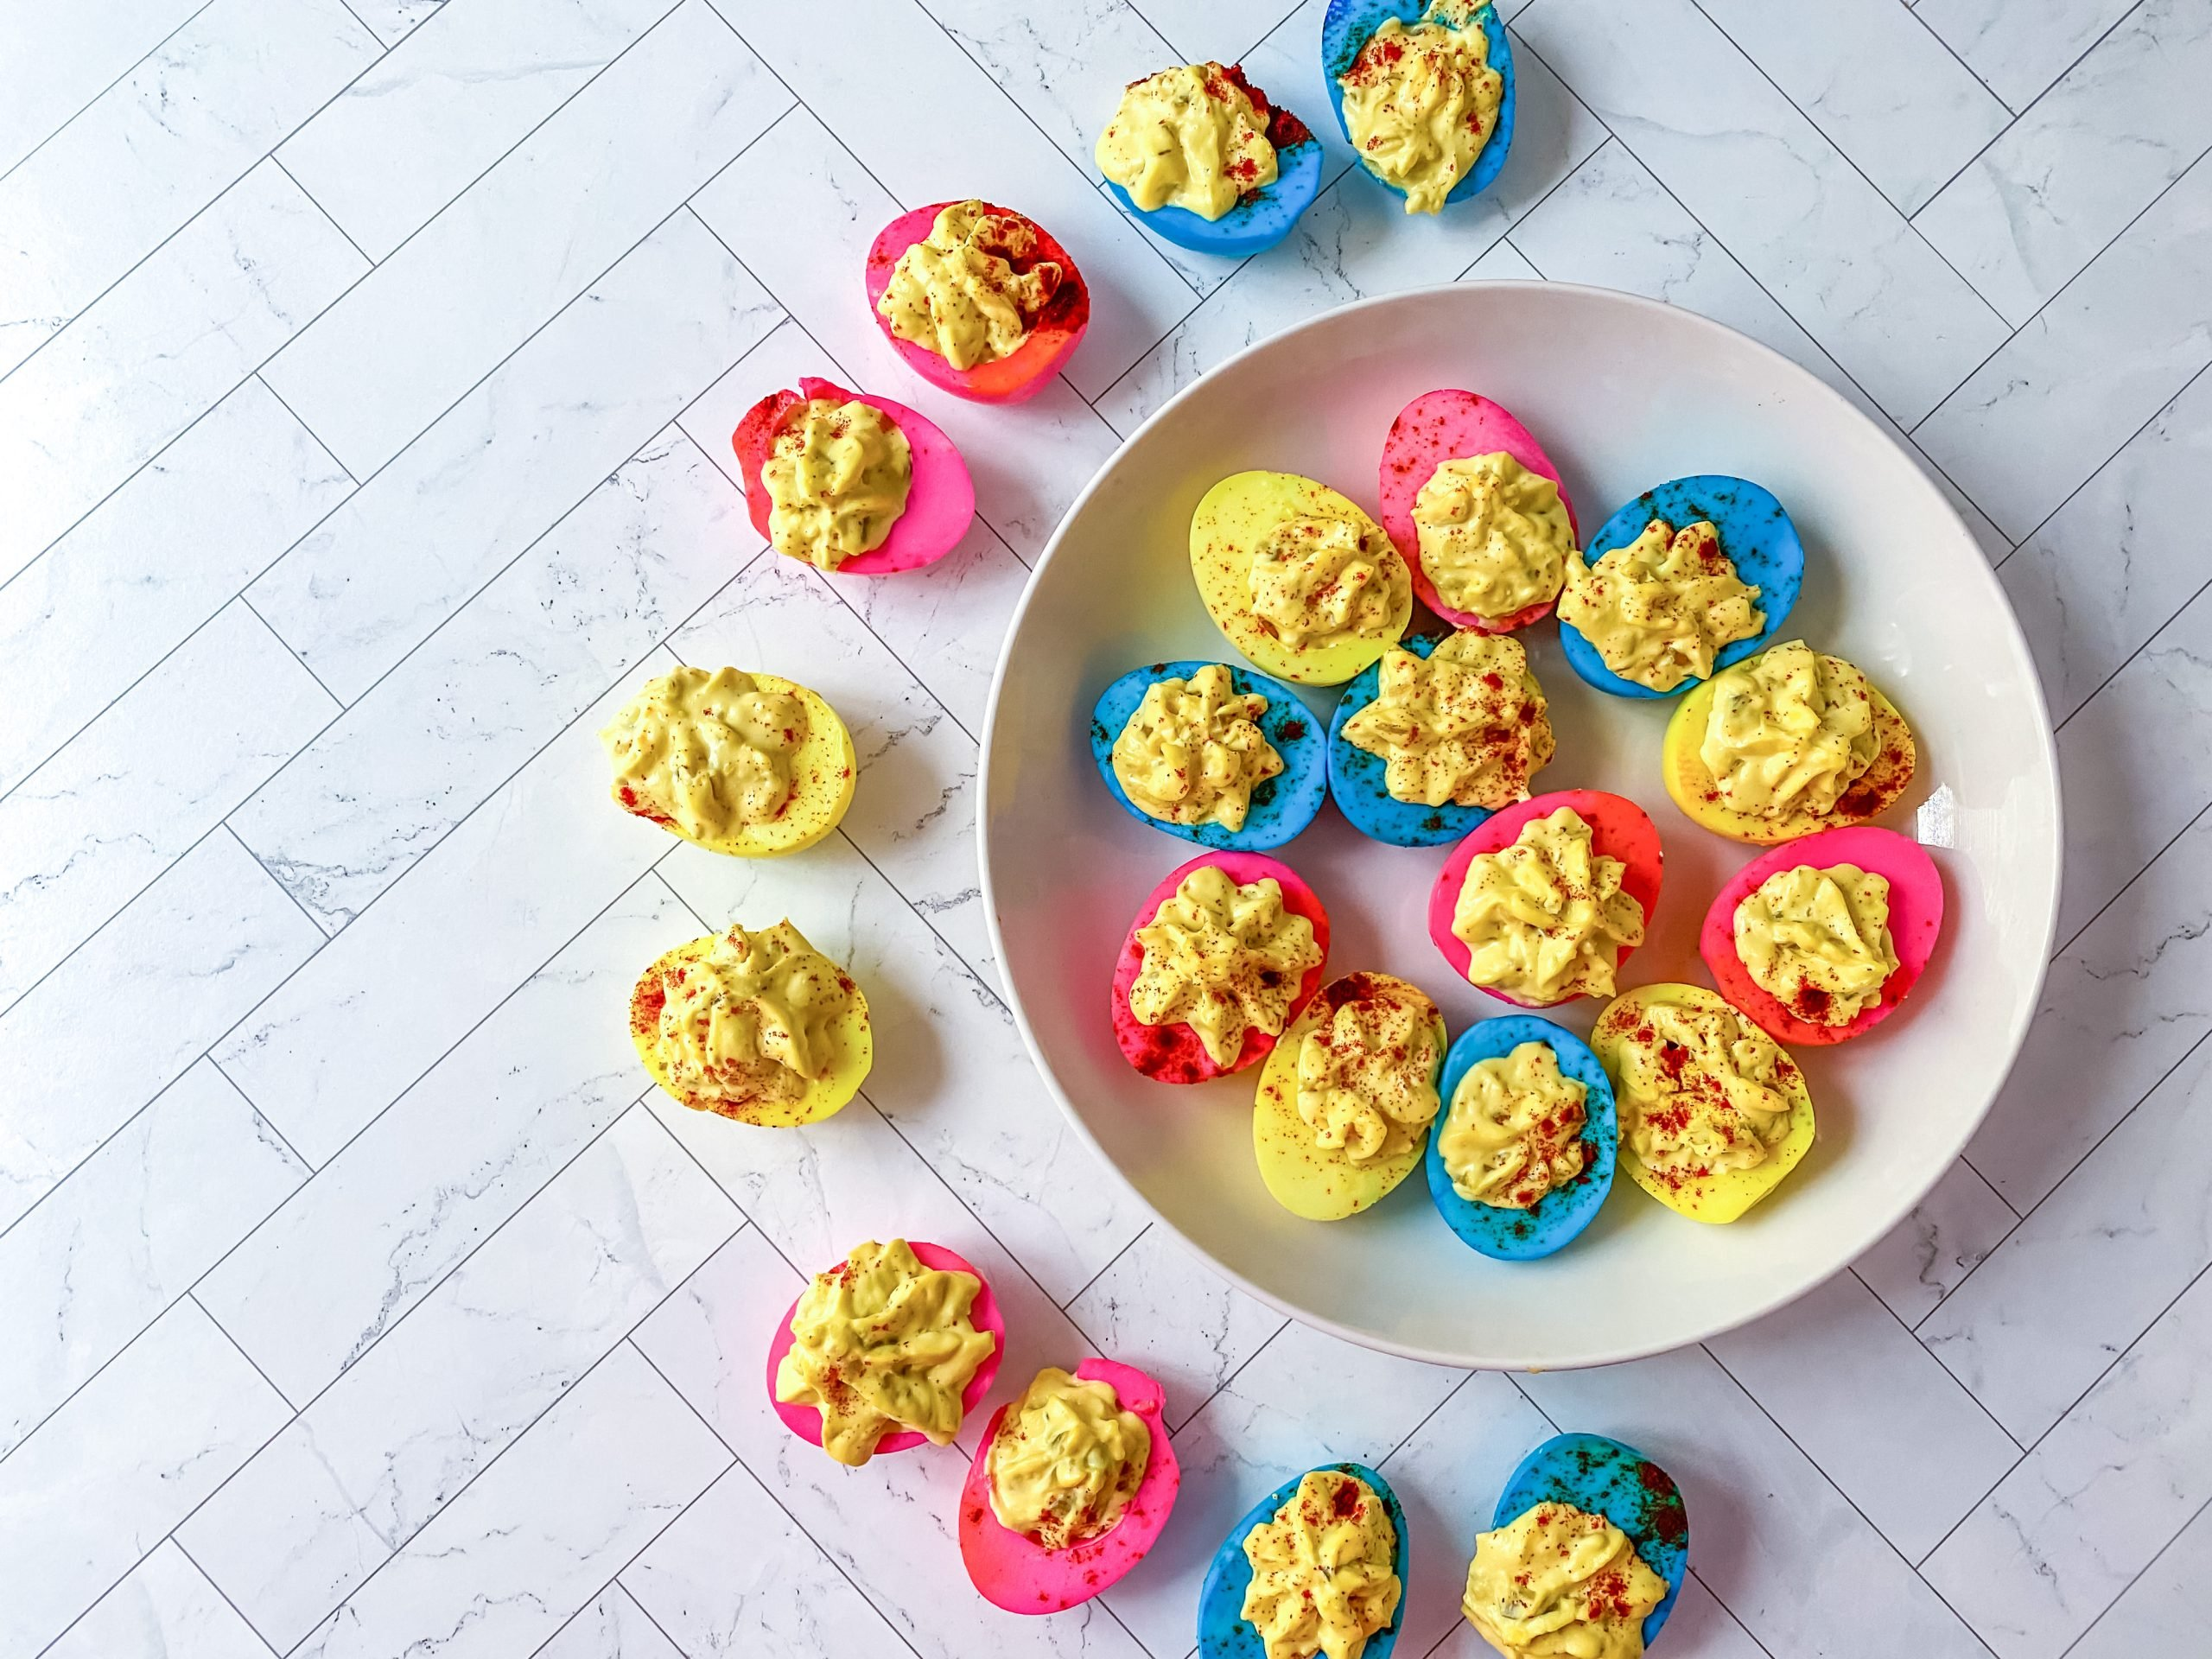 plate of multi colored deviled eggs that are blue, pink, and yellow.; deviled eggs surrounding half of the plate as well, filled with egg yolk mixture